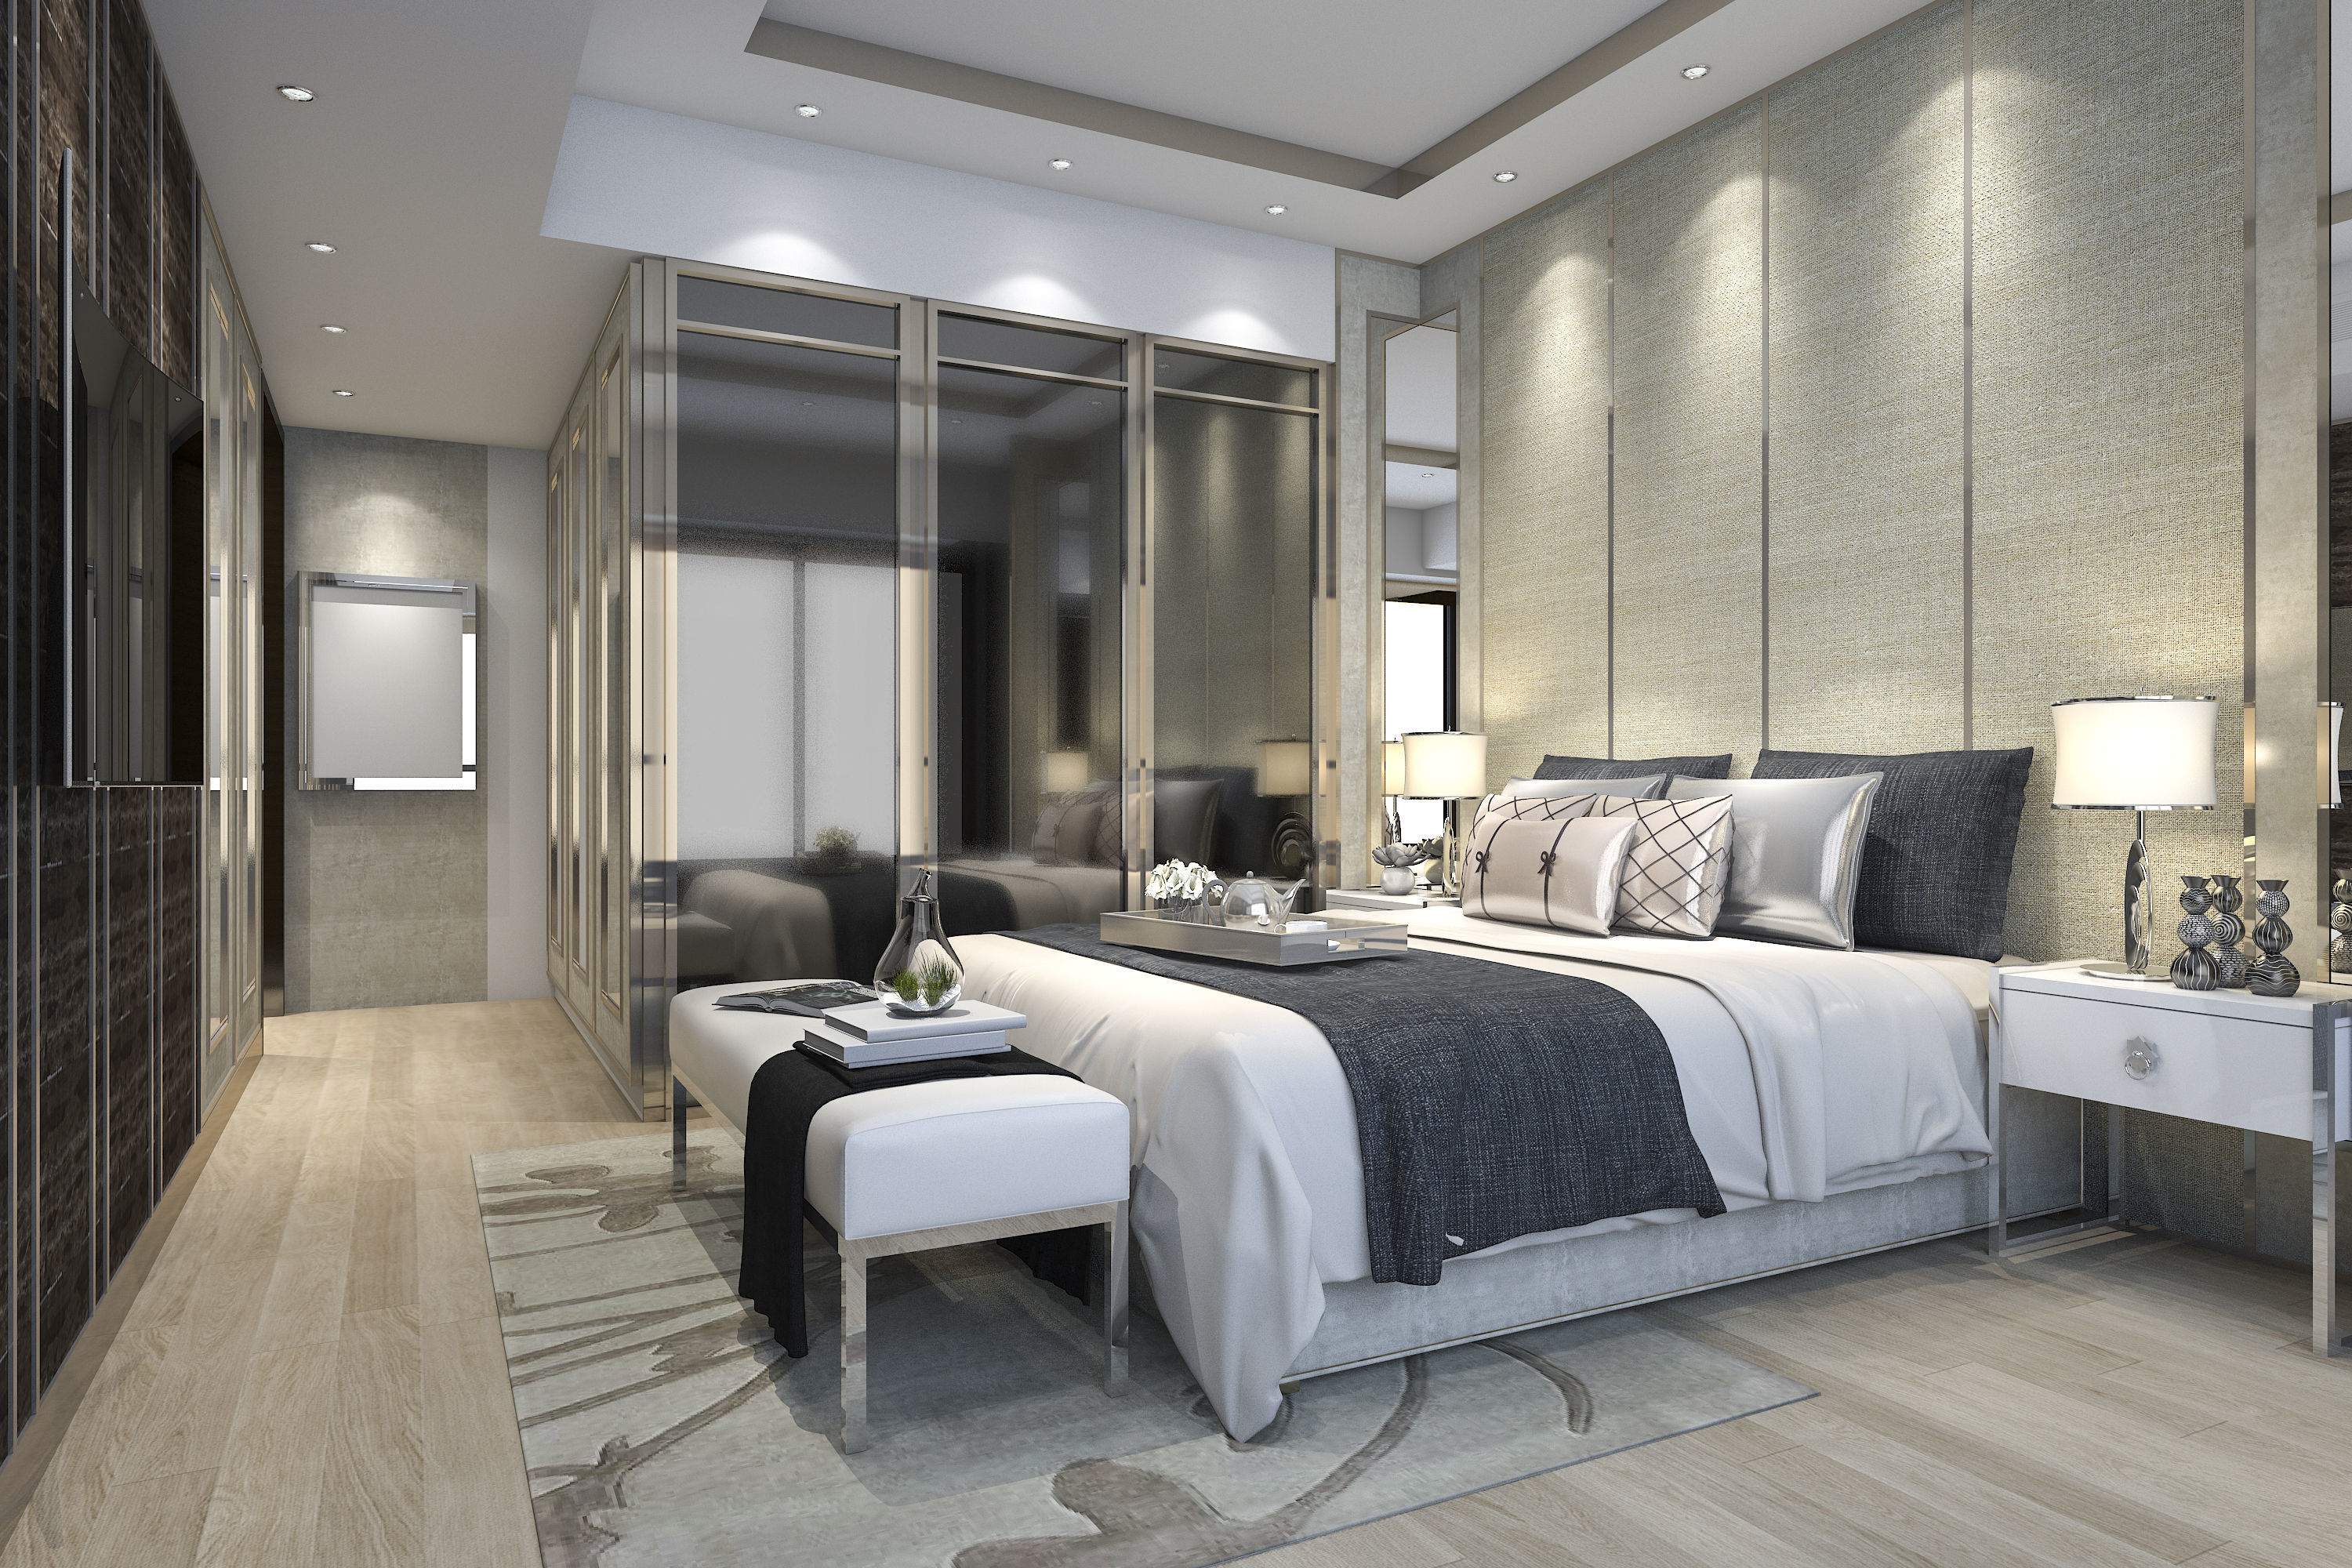 luxury modern bedroom suite in hotel with wardrobe 3D ... on Model Bedroom Ideas  id=94163